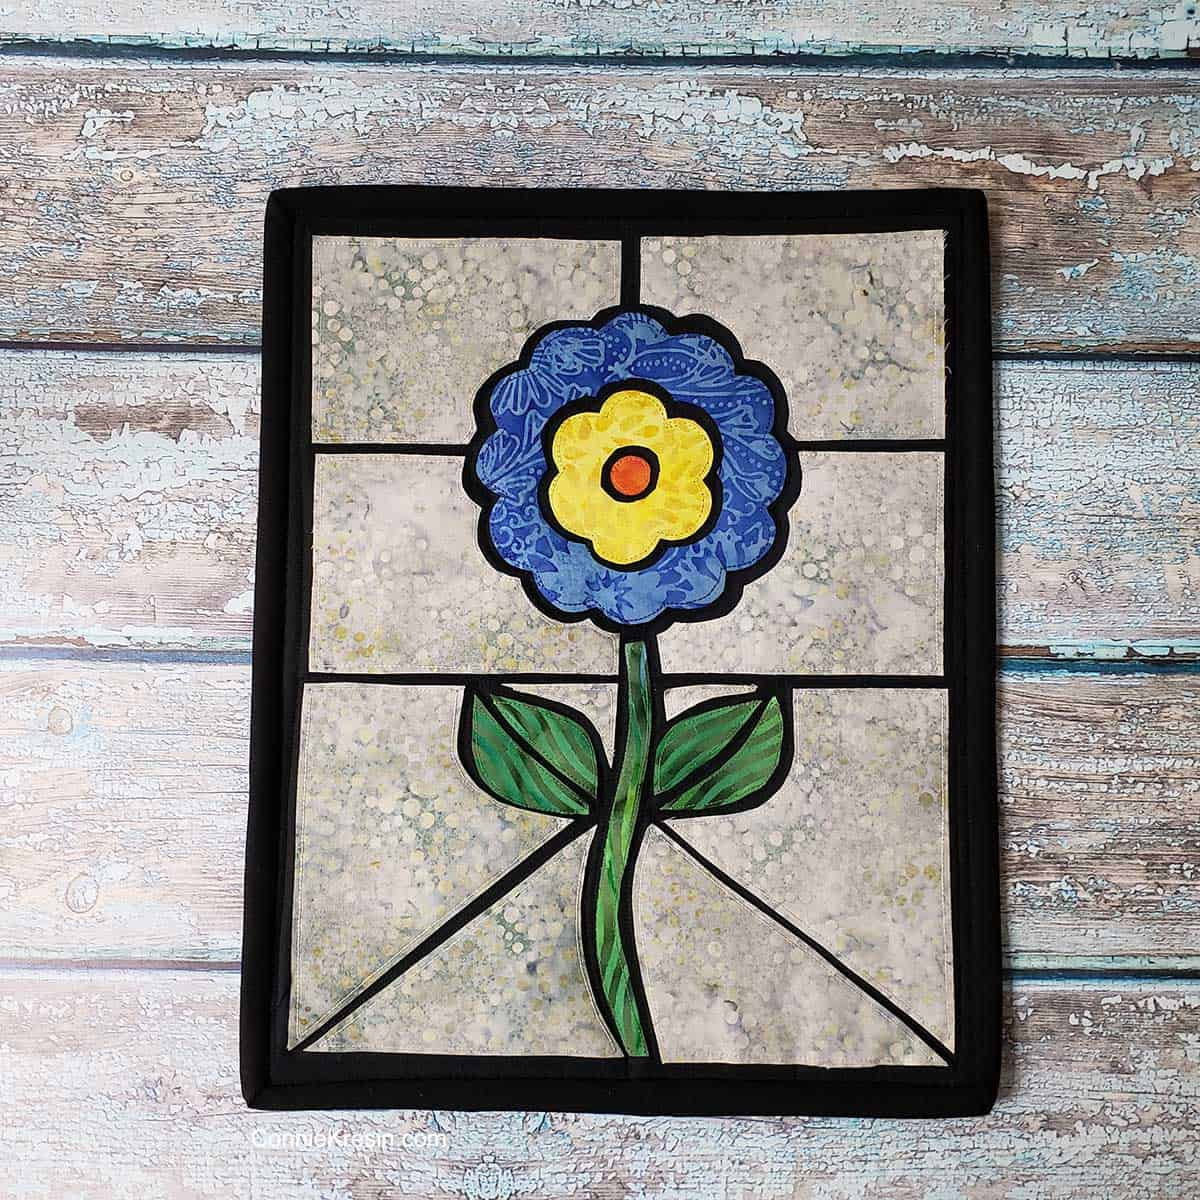 Quilted stained glass flower quilt